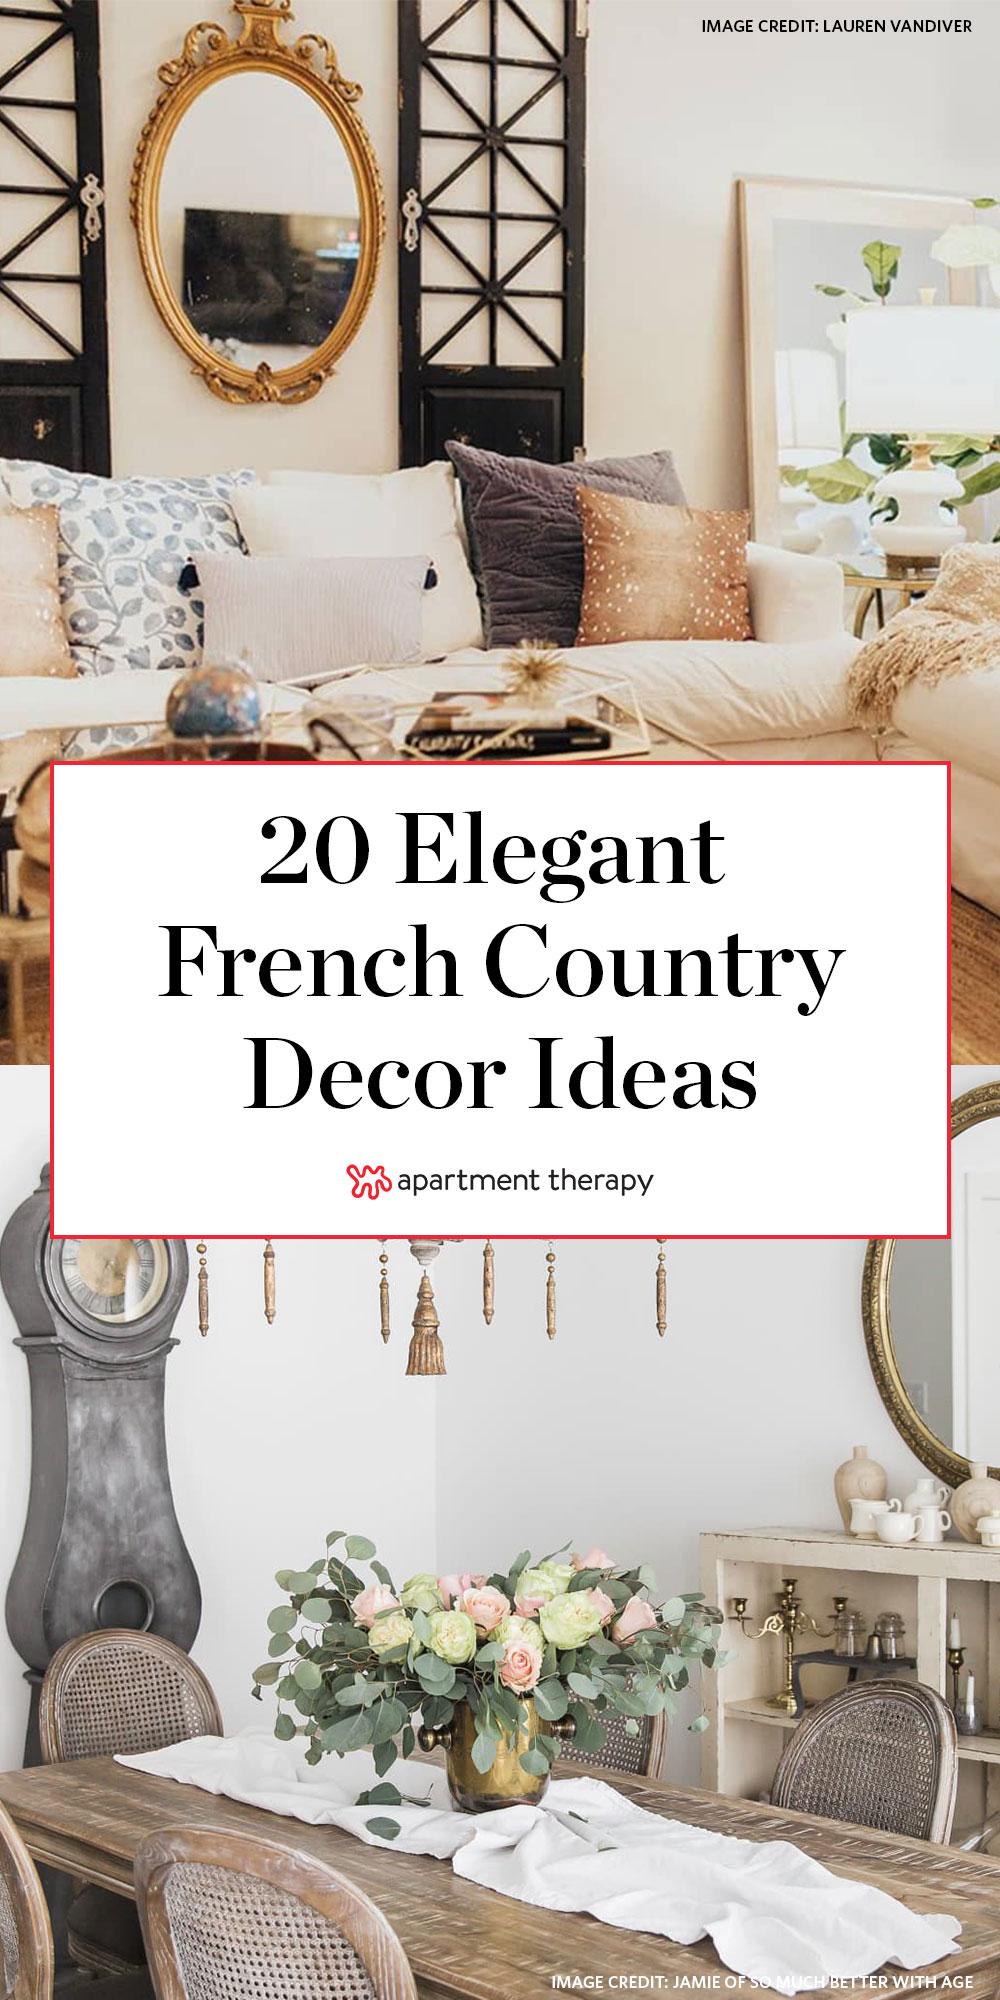 20 Rooms That Will Make You Rethink French Country Decor Apartment Therapy,White Herringbone Subway Tile Kitchen Backsplash